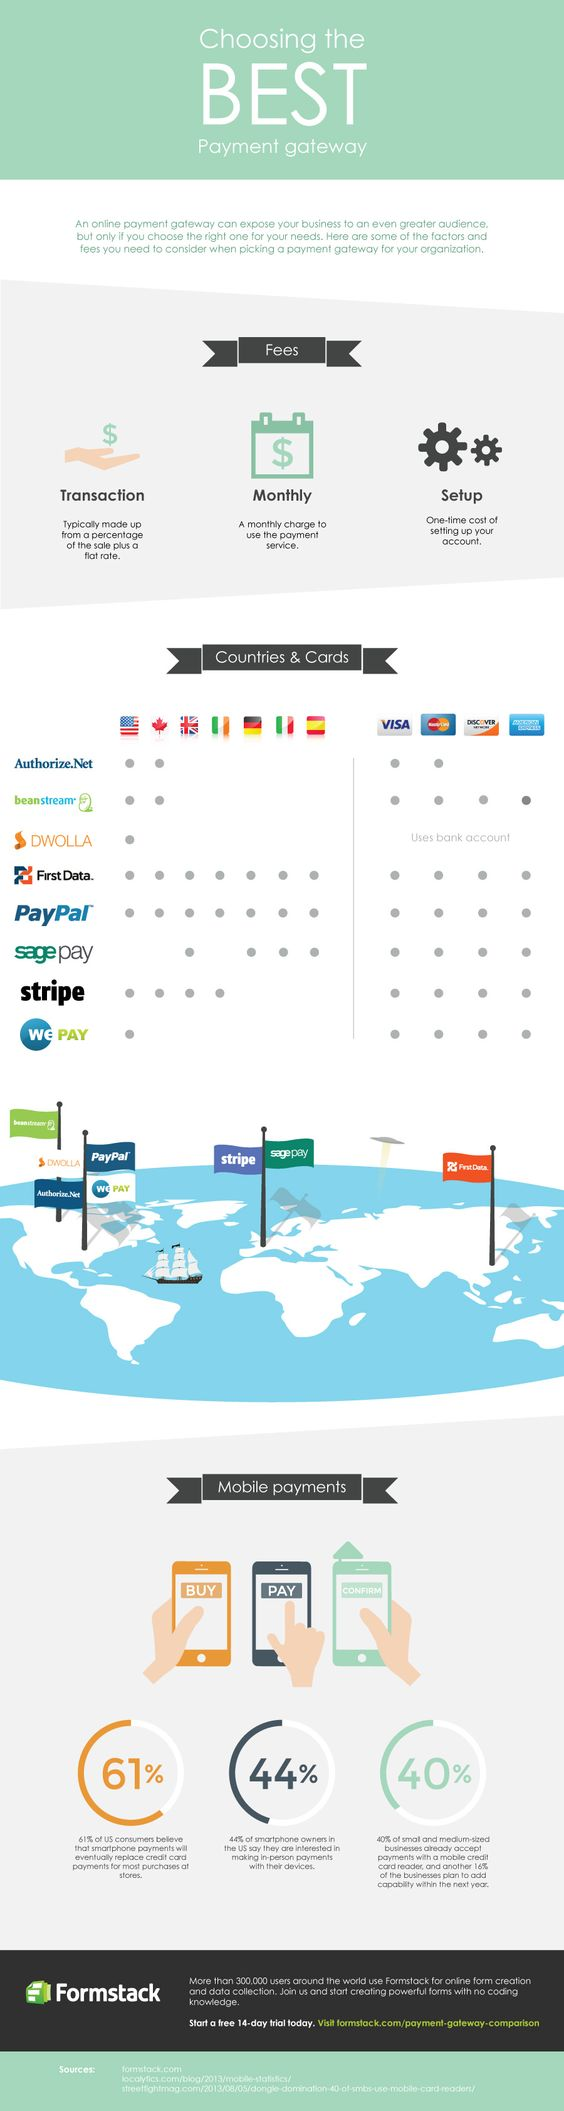 Awesome infographic to help you select the best payment gateway.